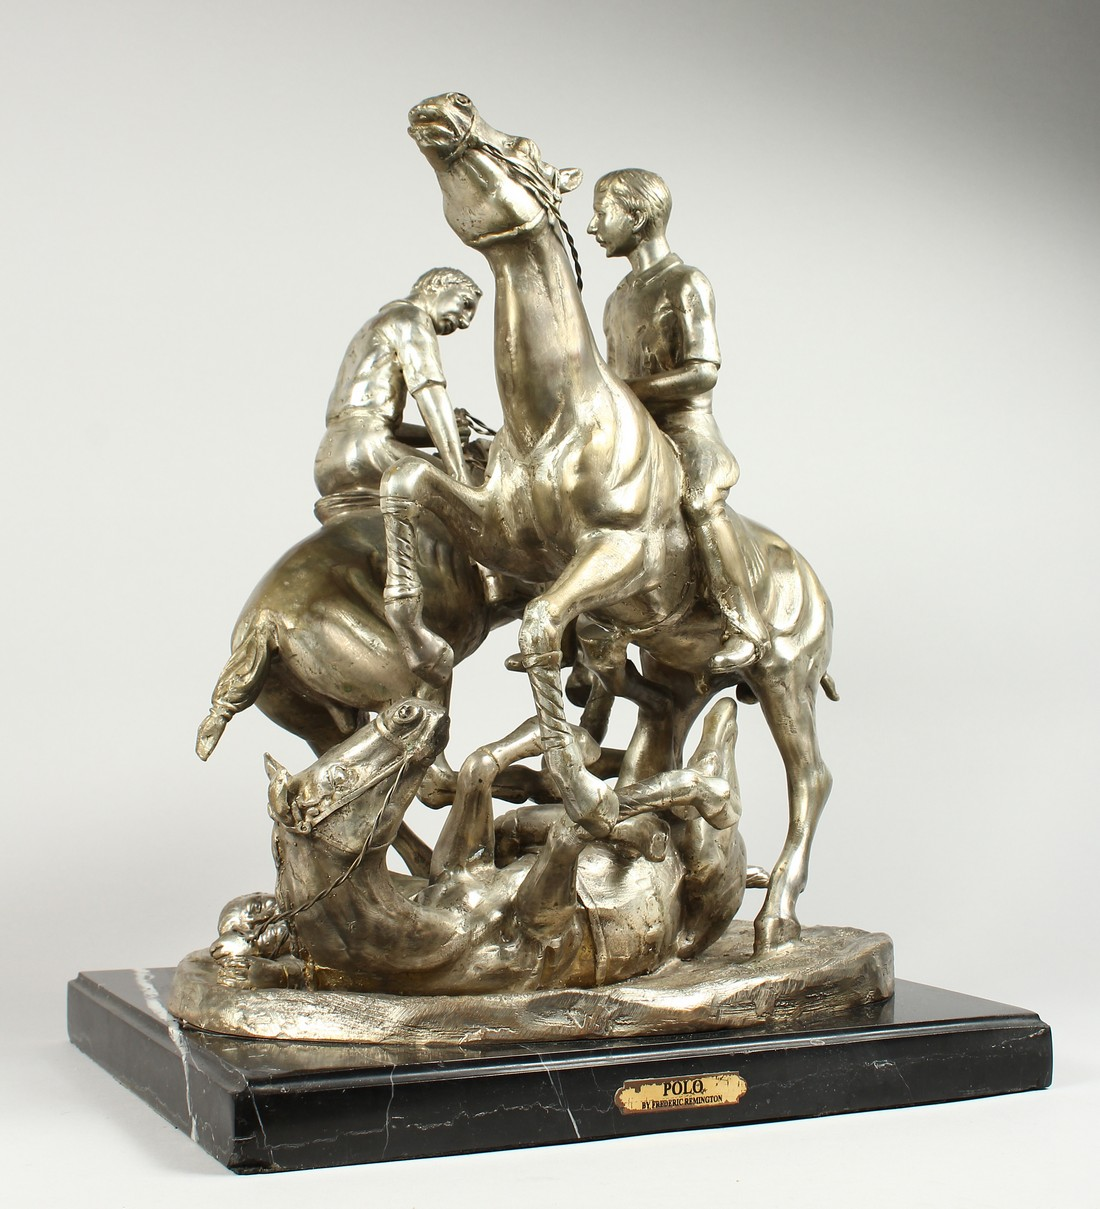 AFTER F. REMMINGTON A SILVER BRONZE GROUP OF TWO RIDERS ON HORSEBACK, a horn and rider on the floor.